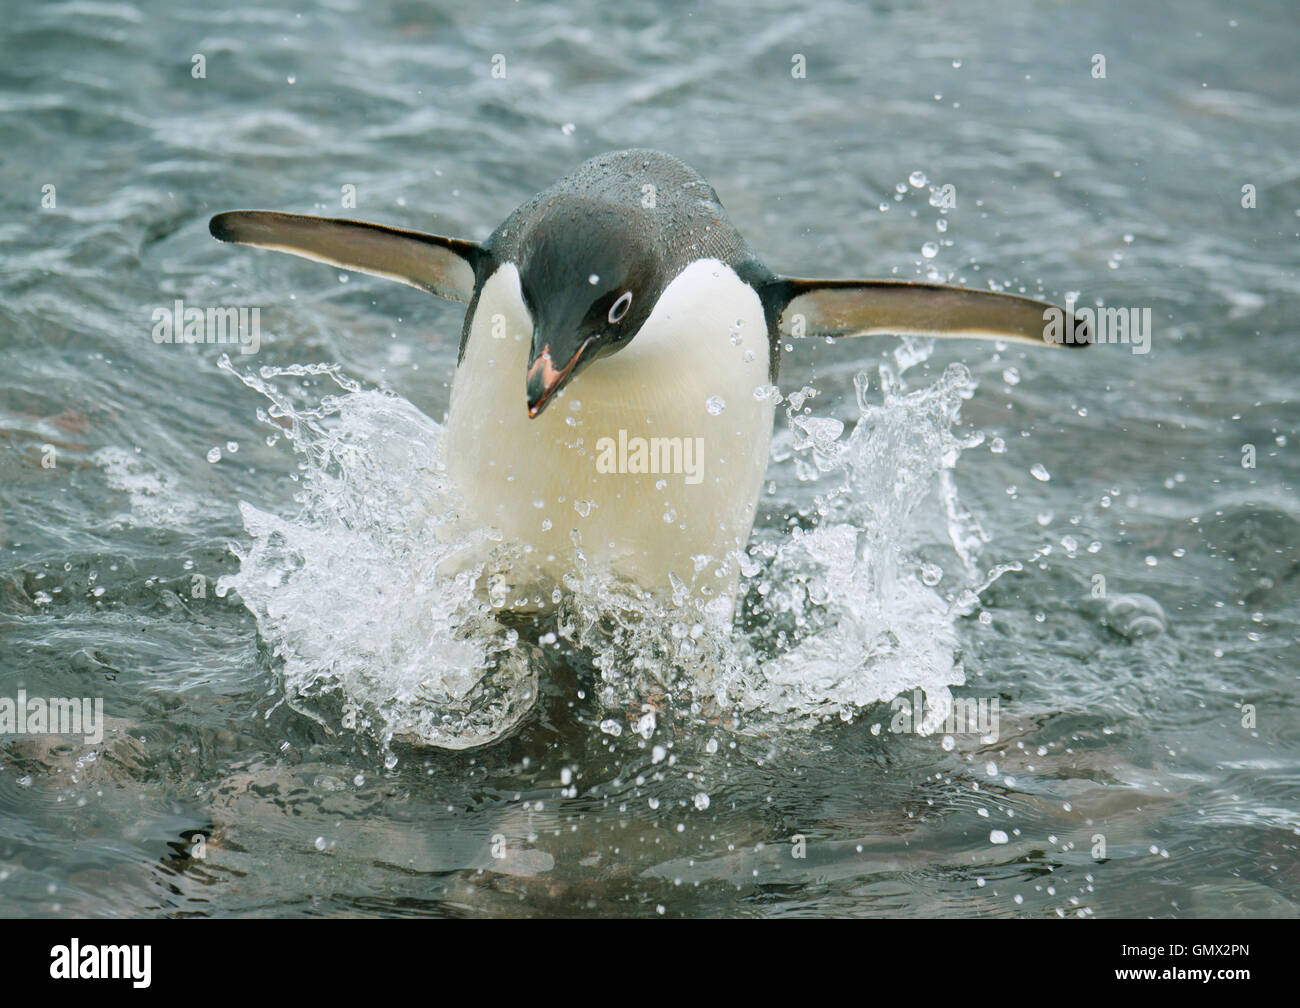 Adelie Penguin (Pygoscelis adeliae) splashing as it comes out of the water, Paulet Island, Antarctica - Stock Image